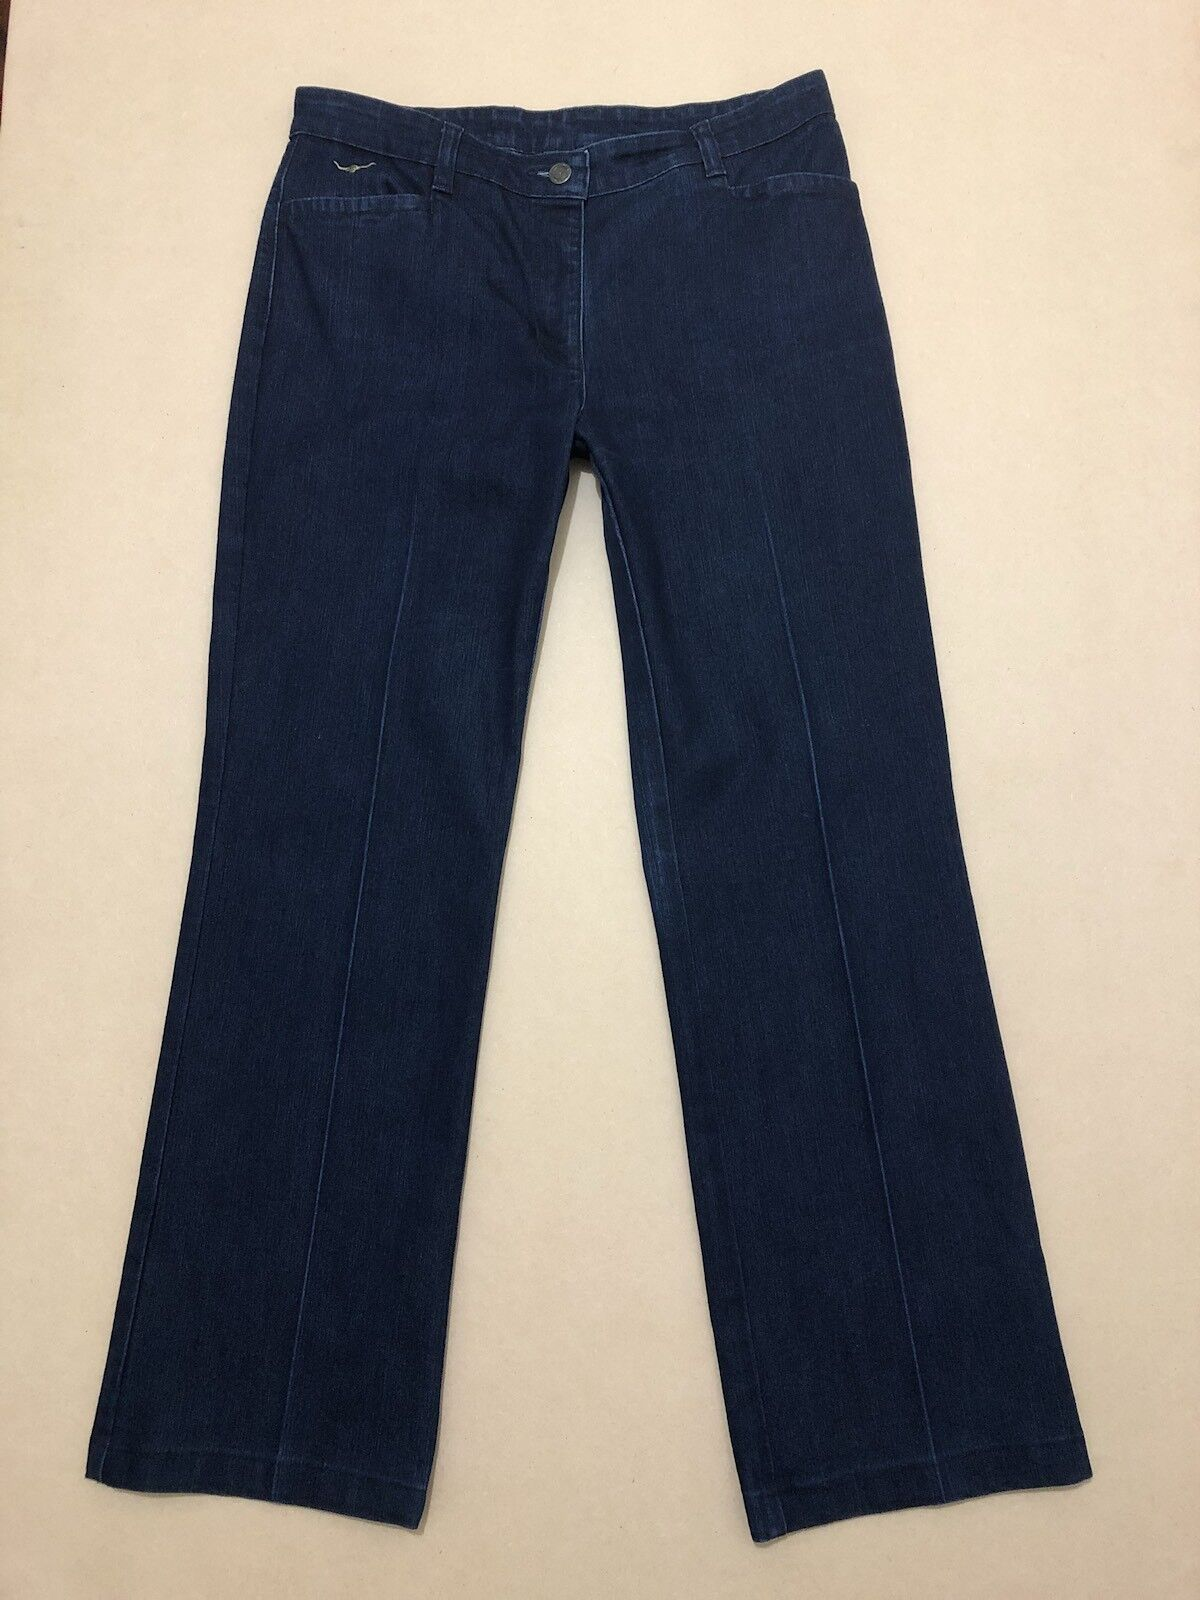 RM WILLIAMS JEANS WOMENS  SIZE 12 R  GREAT COND   TT637   DENIM PANTS TROUSERS